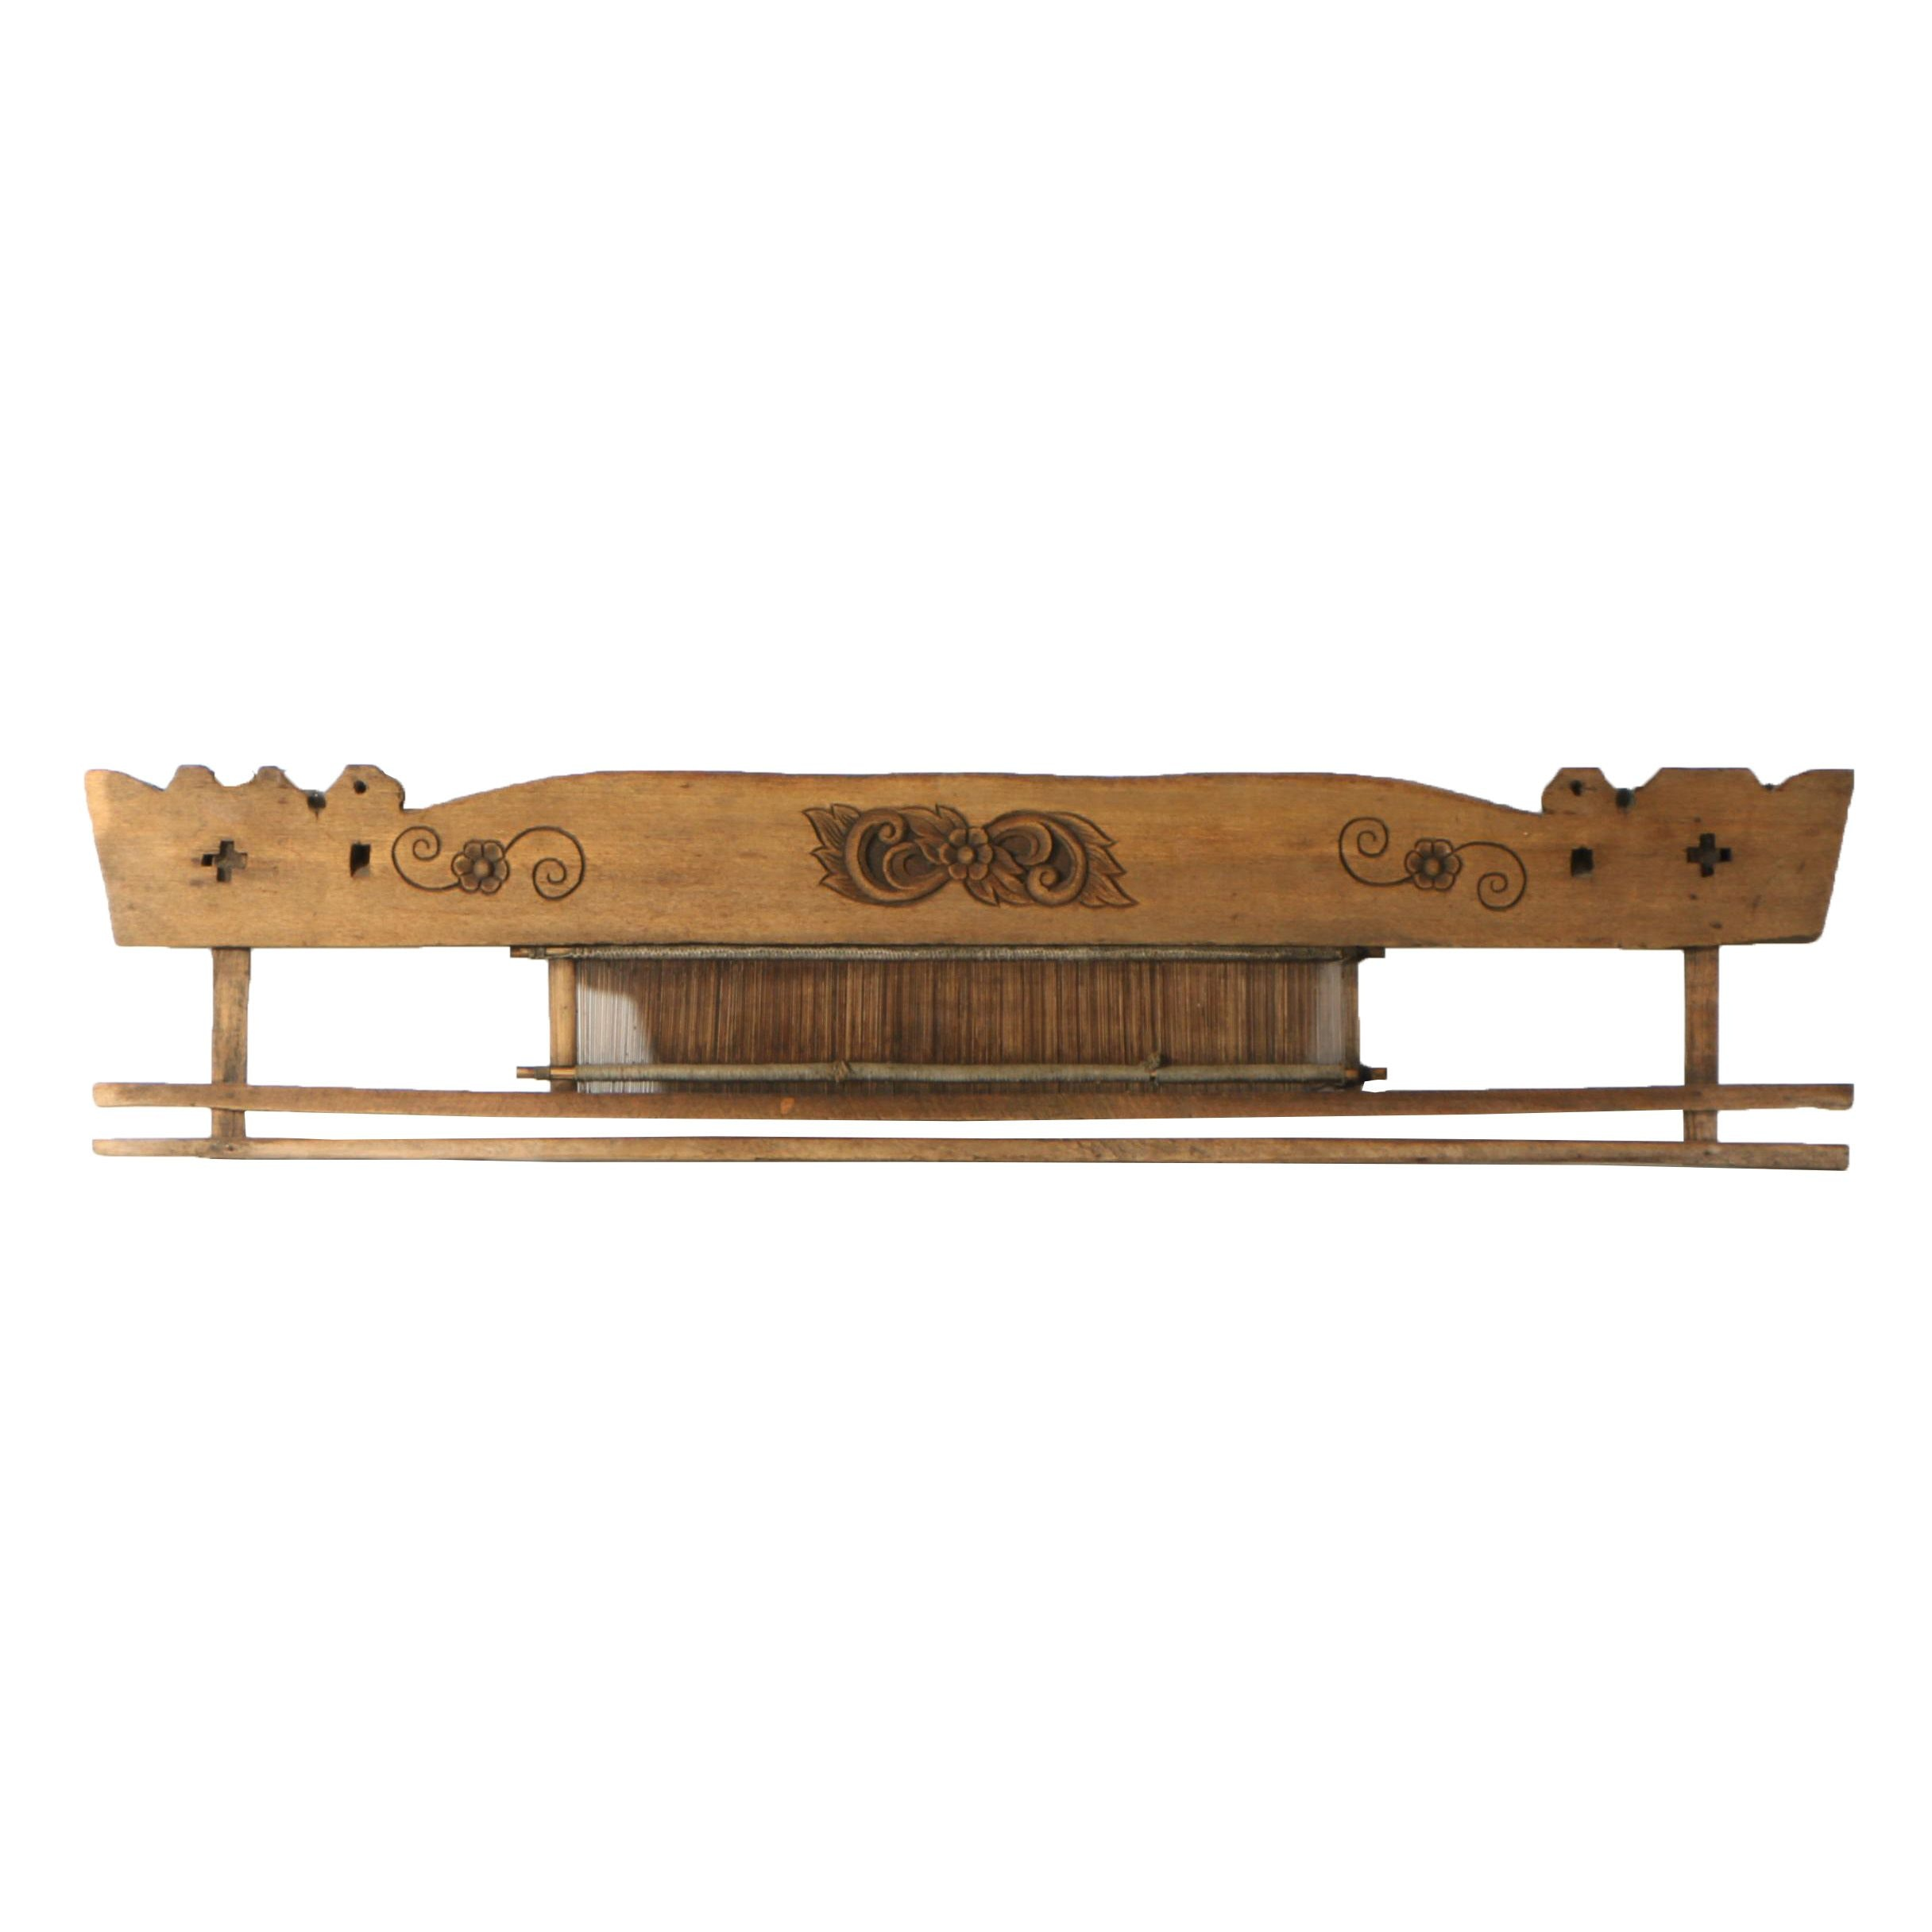 Carved Wood Decorative Reed Loom